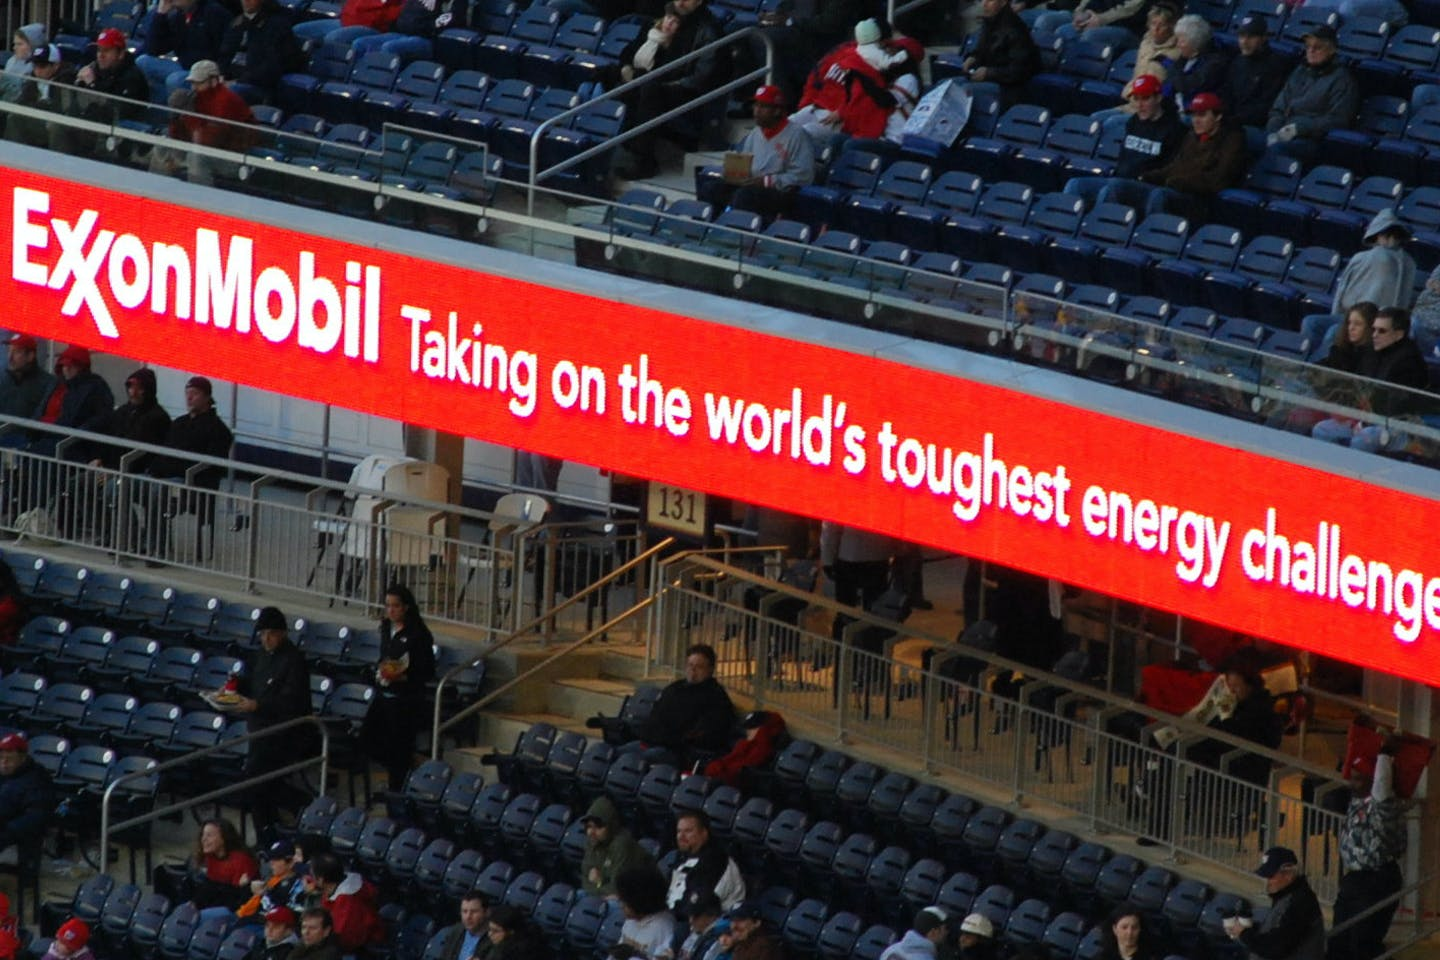 ExxonMobil takes on the world's toughest energy challenges